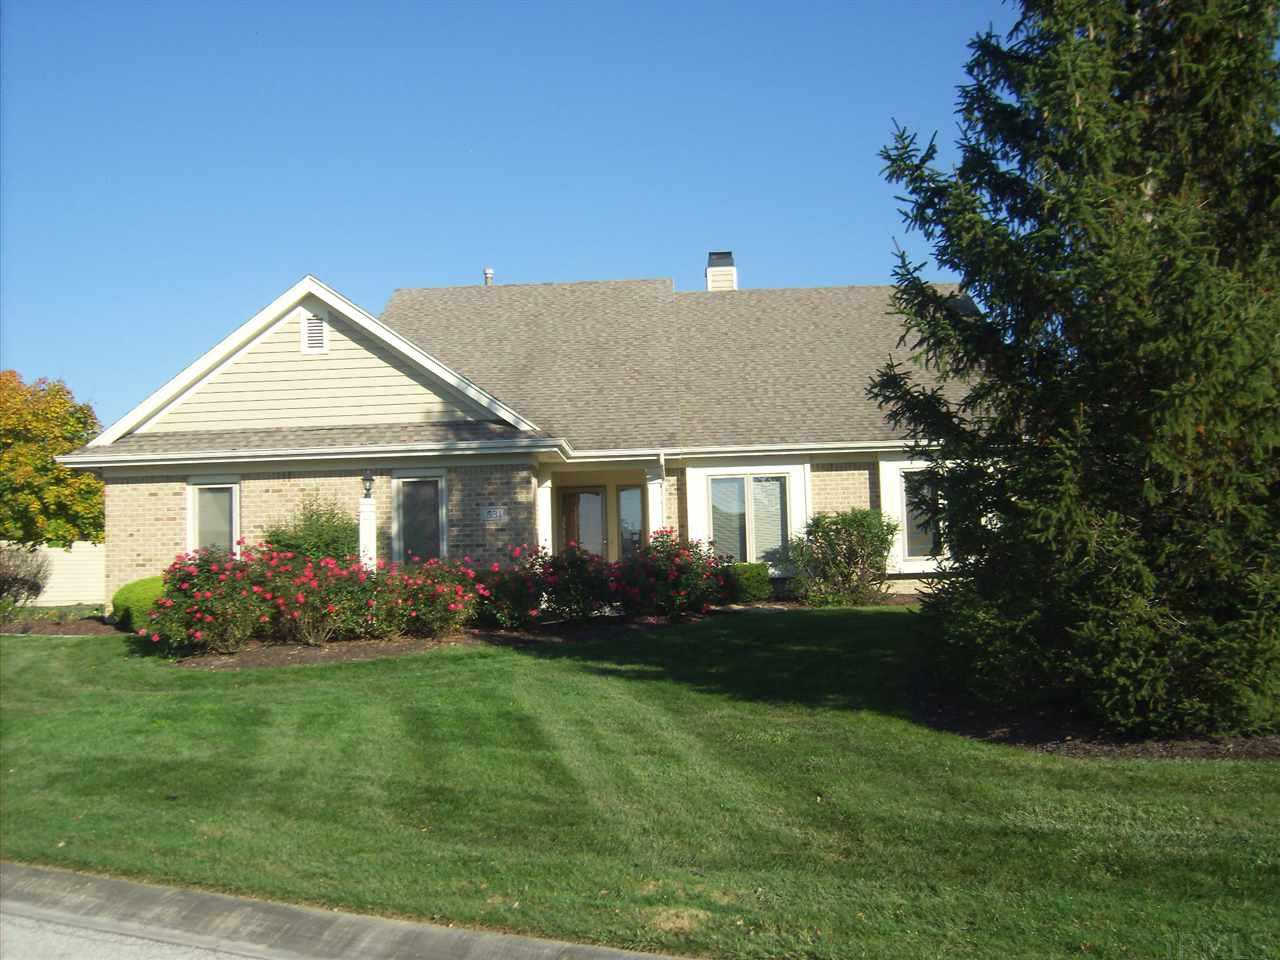 531 Bayspring Drive, Fort Wayne, IN 46814